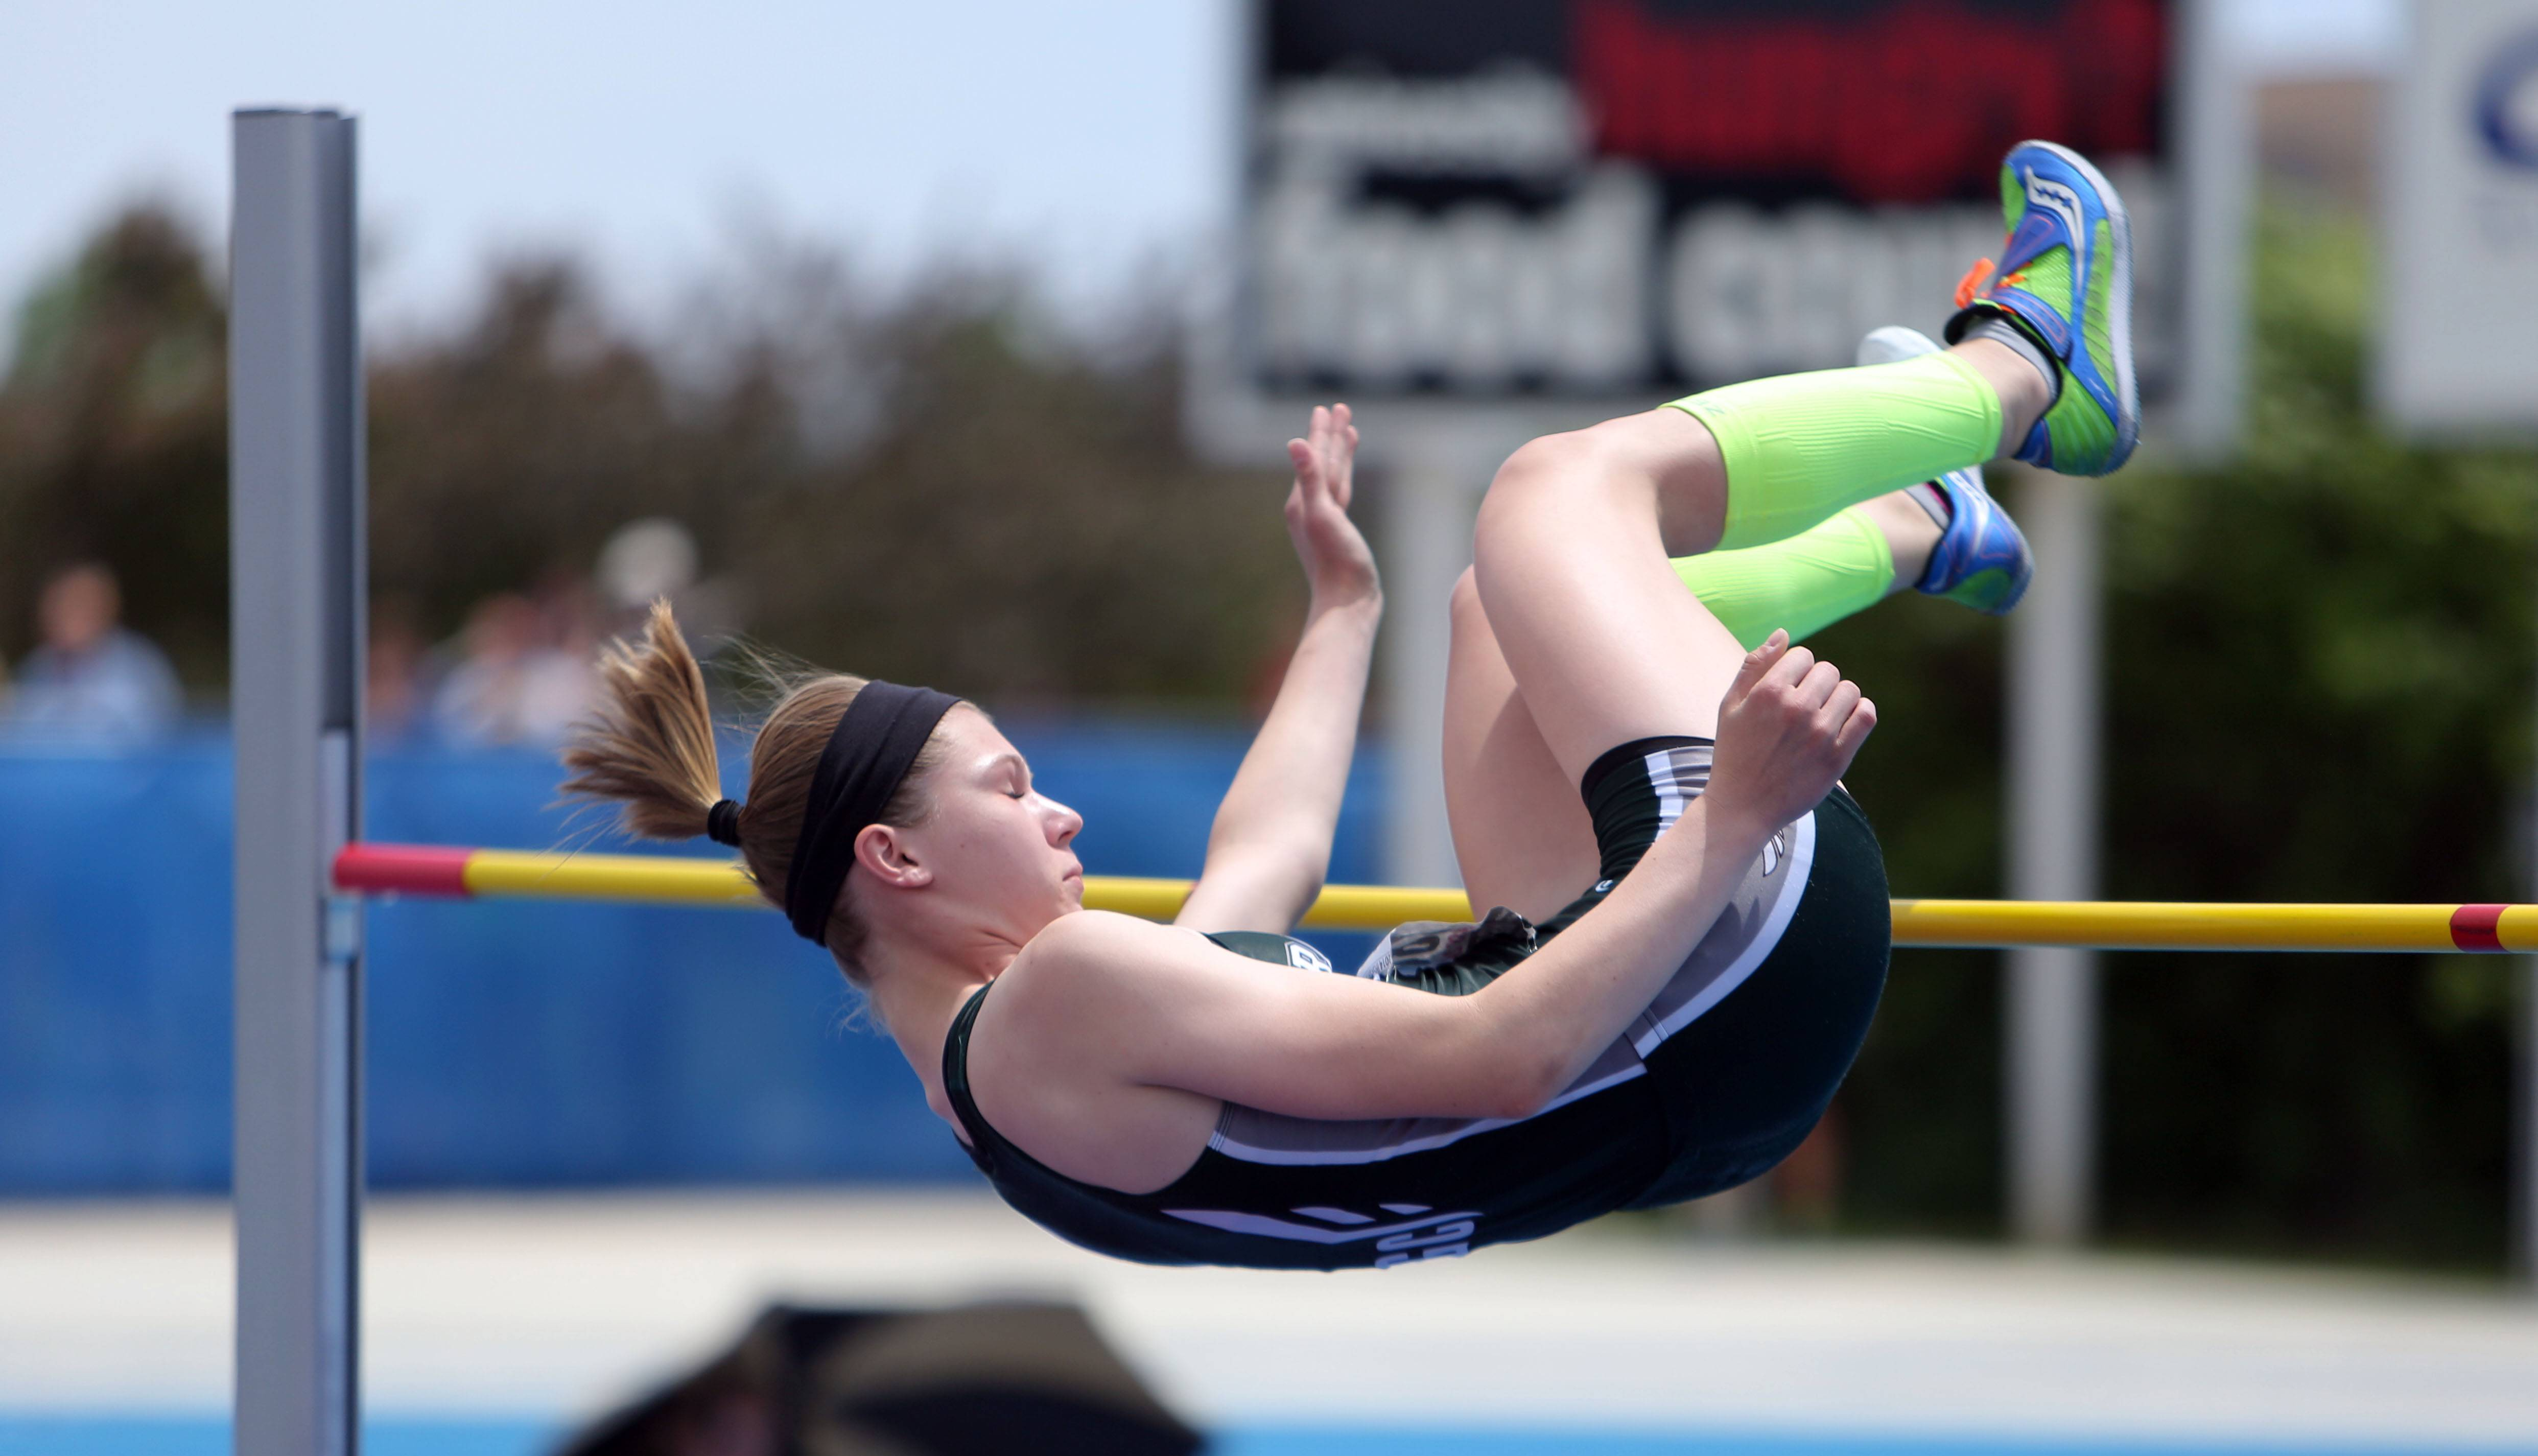 Grayslake Central's Alexa Schmidt competes in the Class 2A high jump during the girls track and field state finals at Eastern Illinois University in Charleston on Saturday.